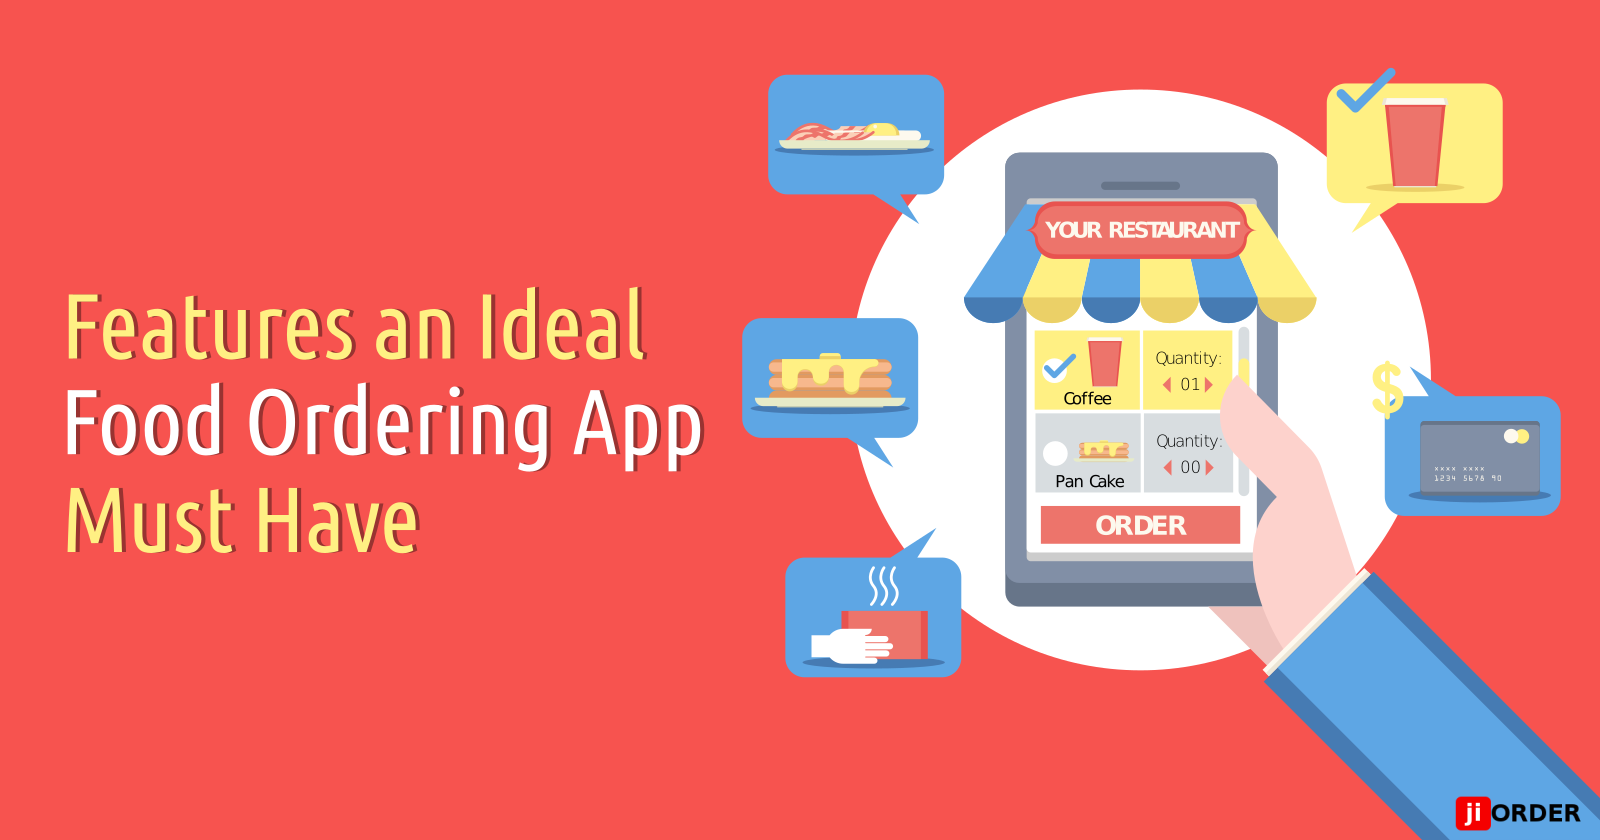 Must Have Features Your Restaurant App Needs